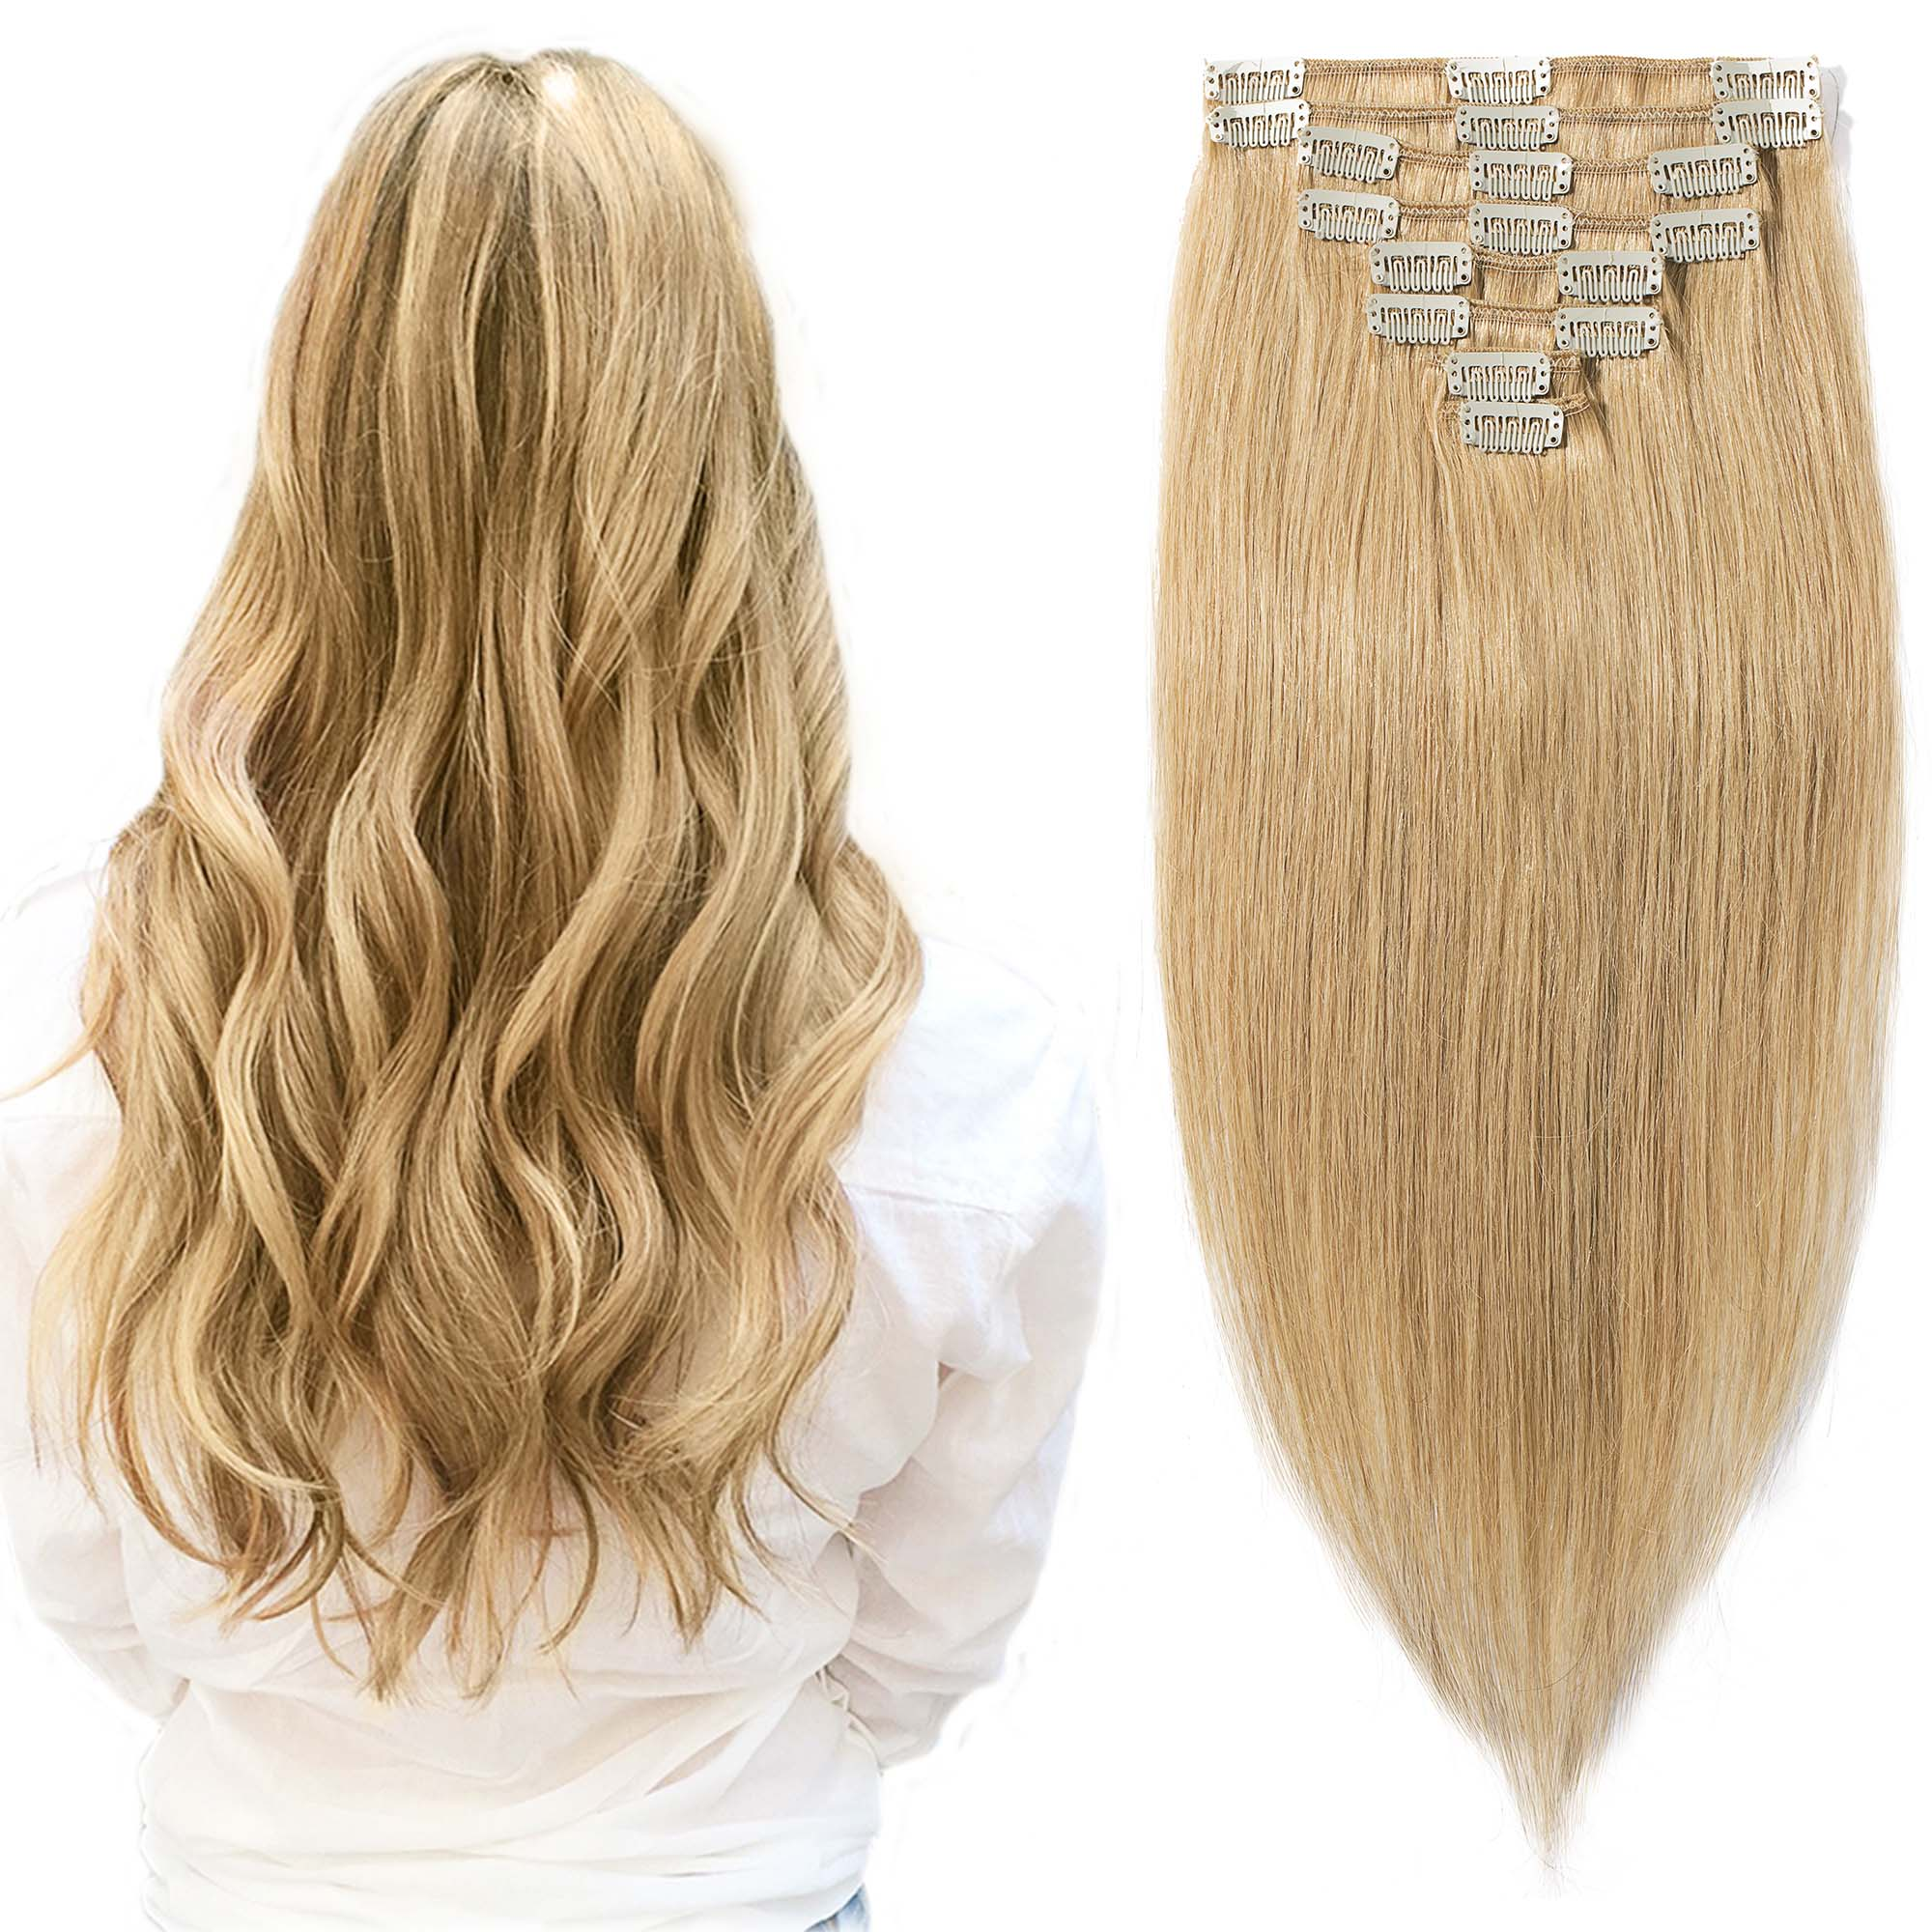 S-noilite Remy Clip in Full Head Straight 100% Human Hair Extensions 8 pcs